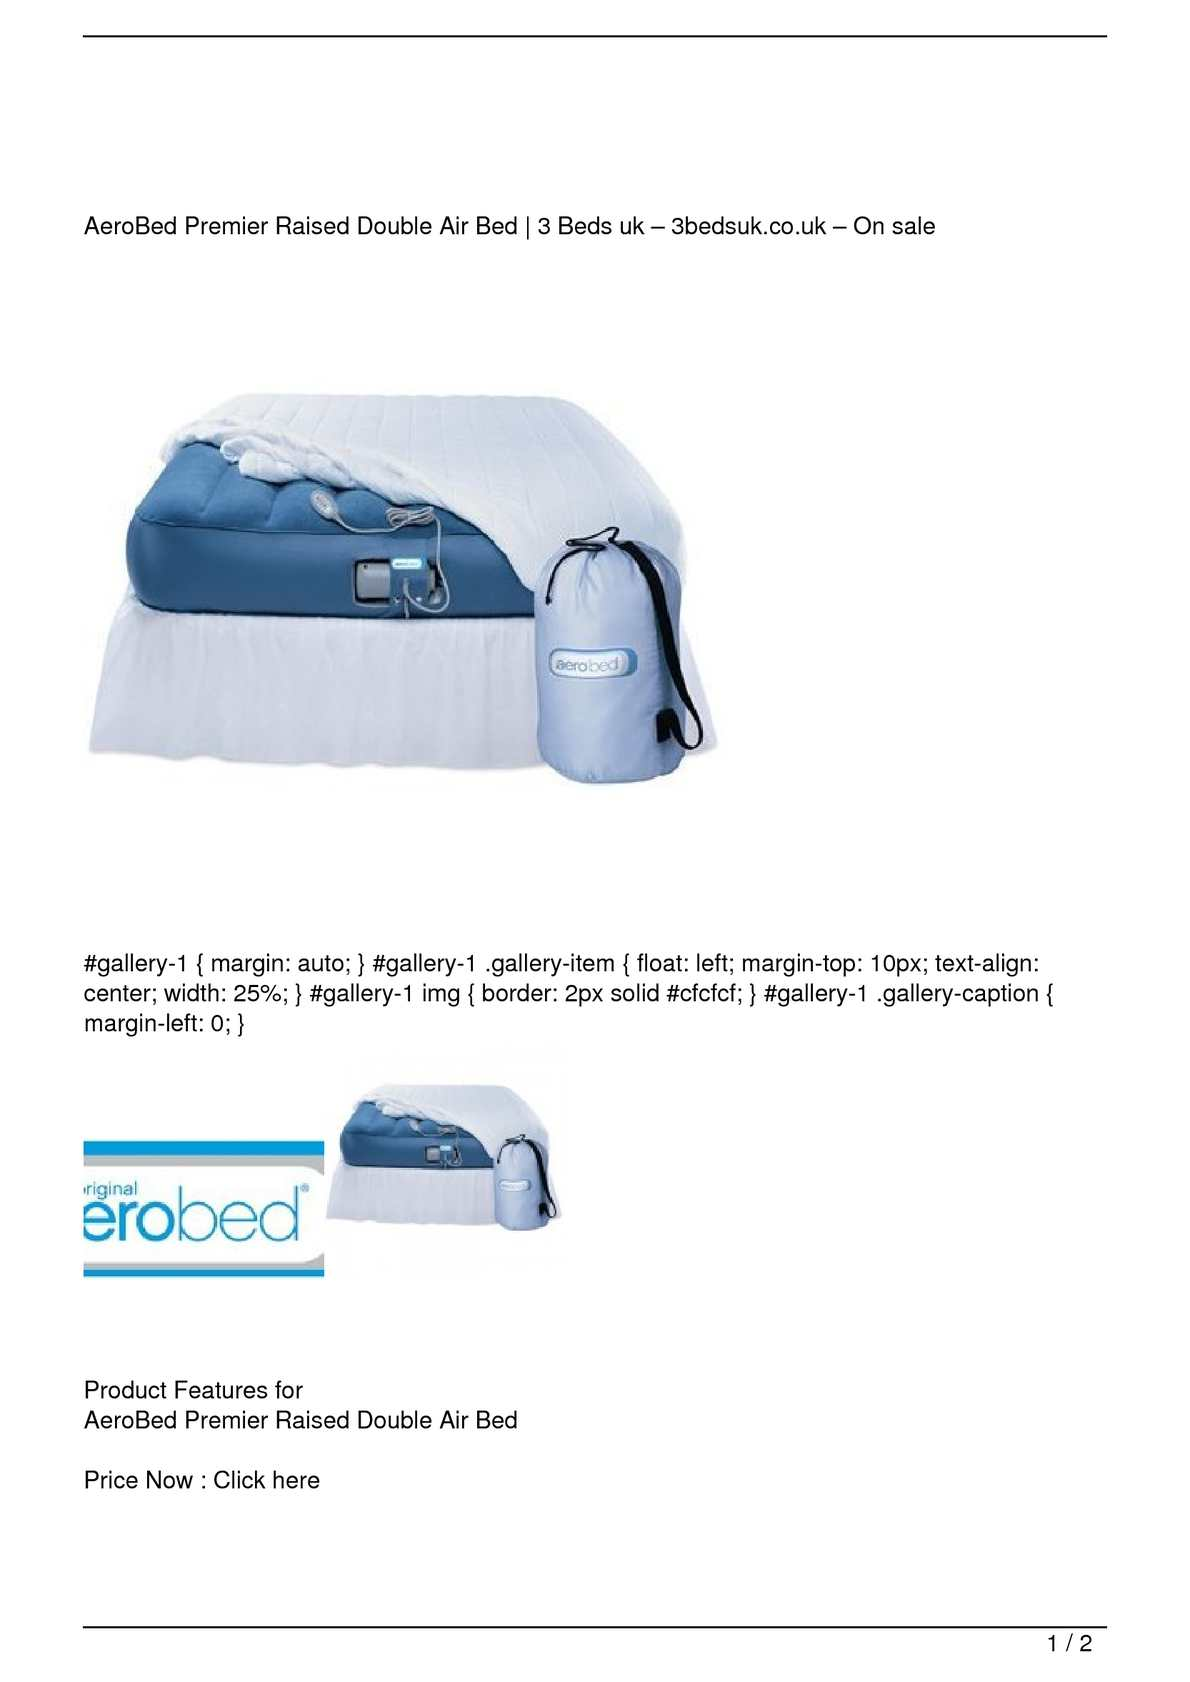 Calameo Aerobed Premier Raised Double Air Bed Big Sale